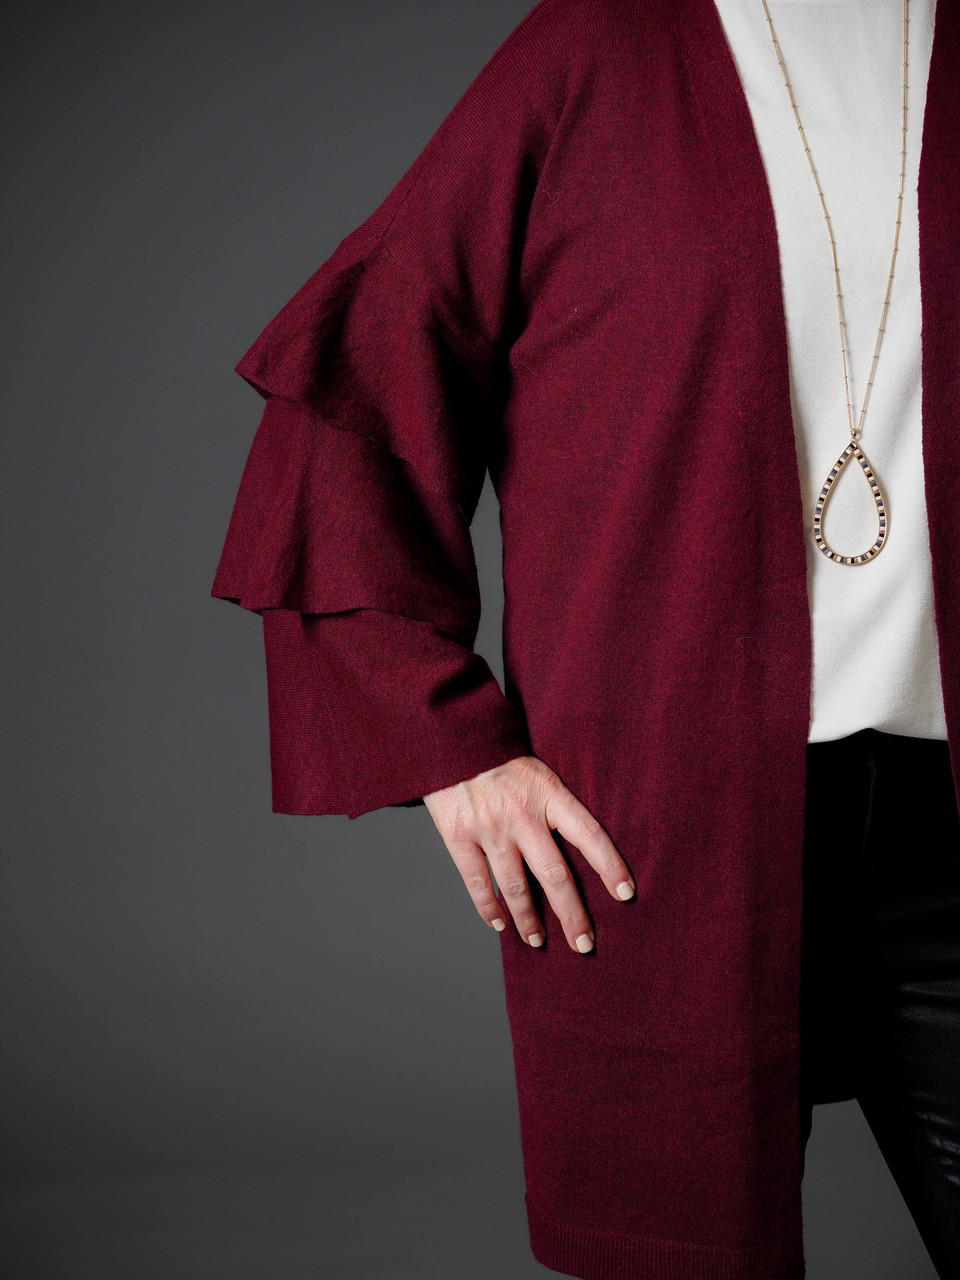 burgundy three tiered ruffle sleeve cardigan